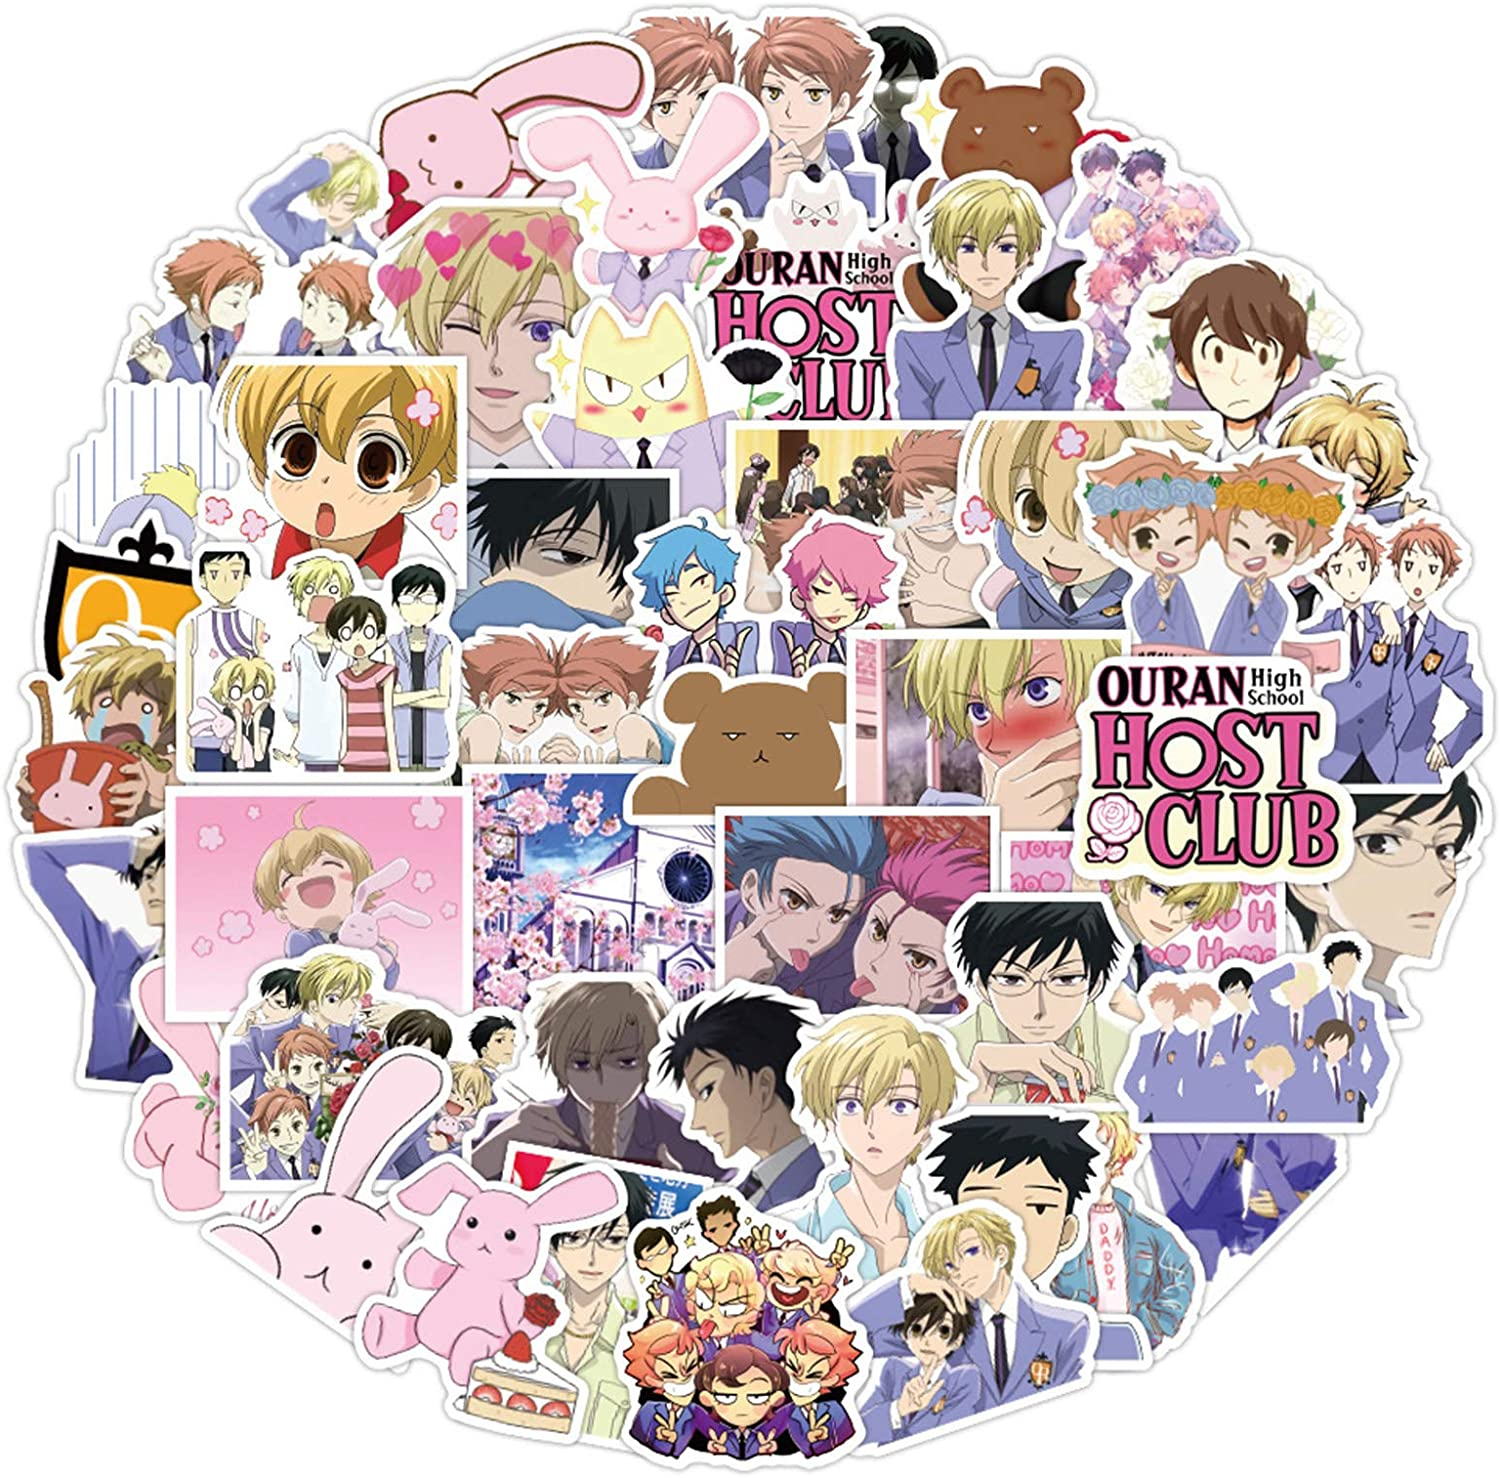 Cute Anime Stickers for Water Bottle(50pcs Pack), Cool Vinyl Decal for Teen Girl Laptop Luggage Phone, Trendy Stickers for Skateboard Travel Case Bicycle (Ouran High School Host Club)